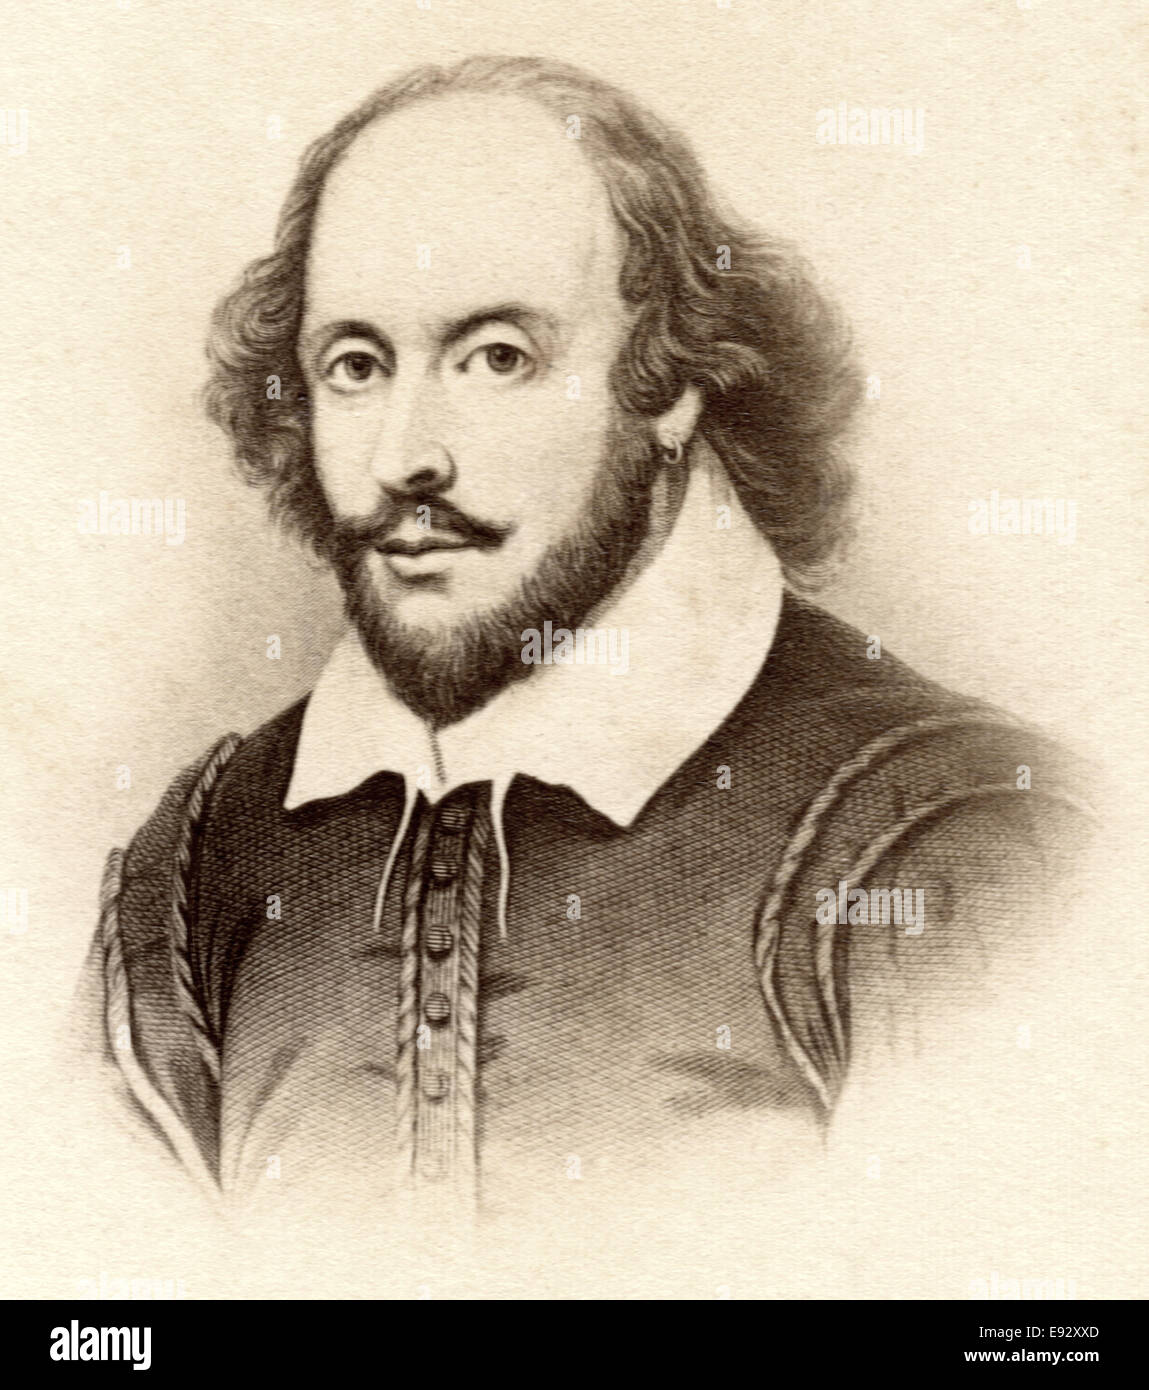 https://c8.alamy.com/comp/E92XXD/william-shakespeare-15641616-english-poet-playwright-and-actor-widely-E92XXD.jpg